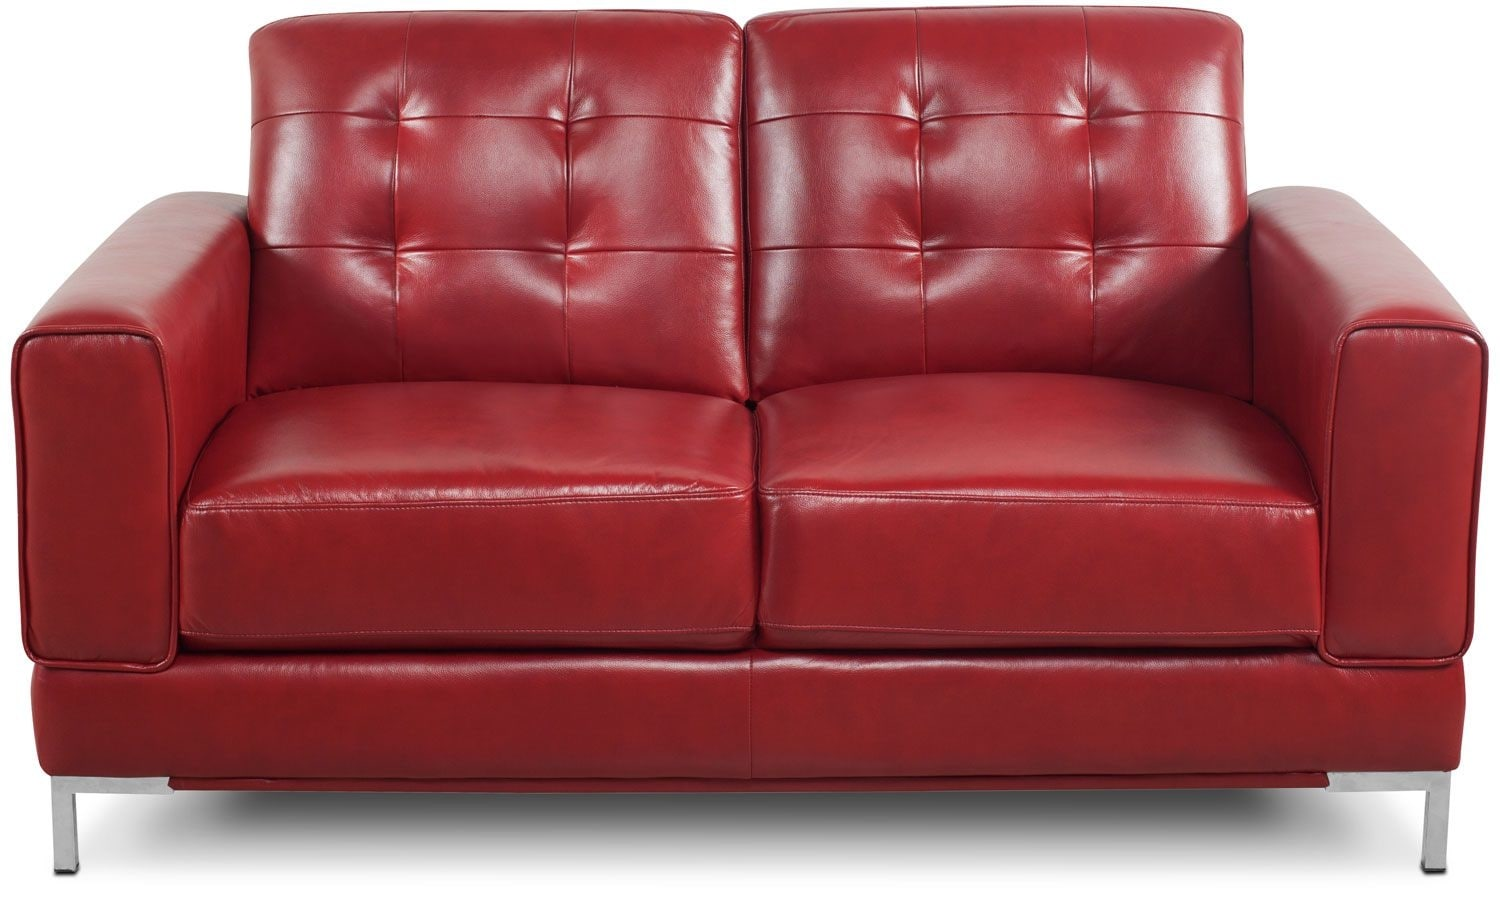 Living Room Furniture - Myer Leather-Like Fabric Loveseat - Red